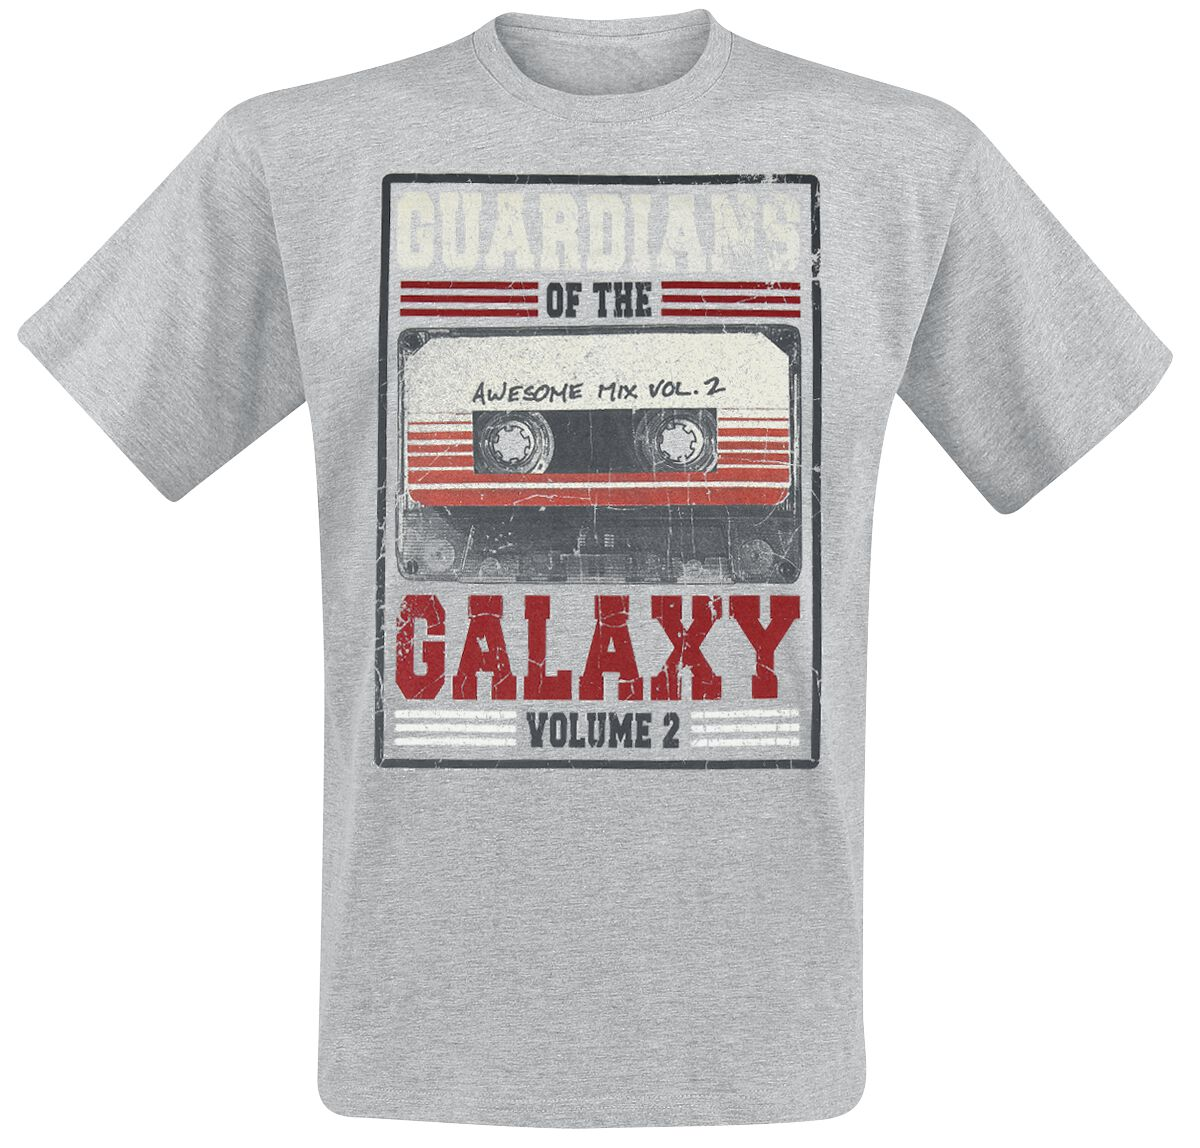 Image of   Guardians Of The Galaxy 2 - Awesome Mix Vol.2 T-Shirt grålig